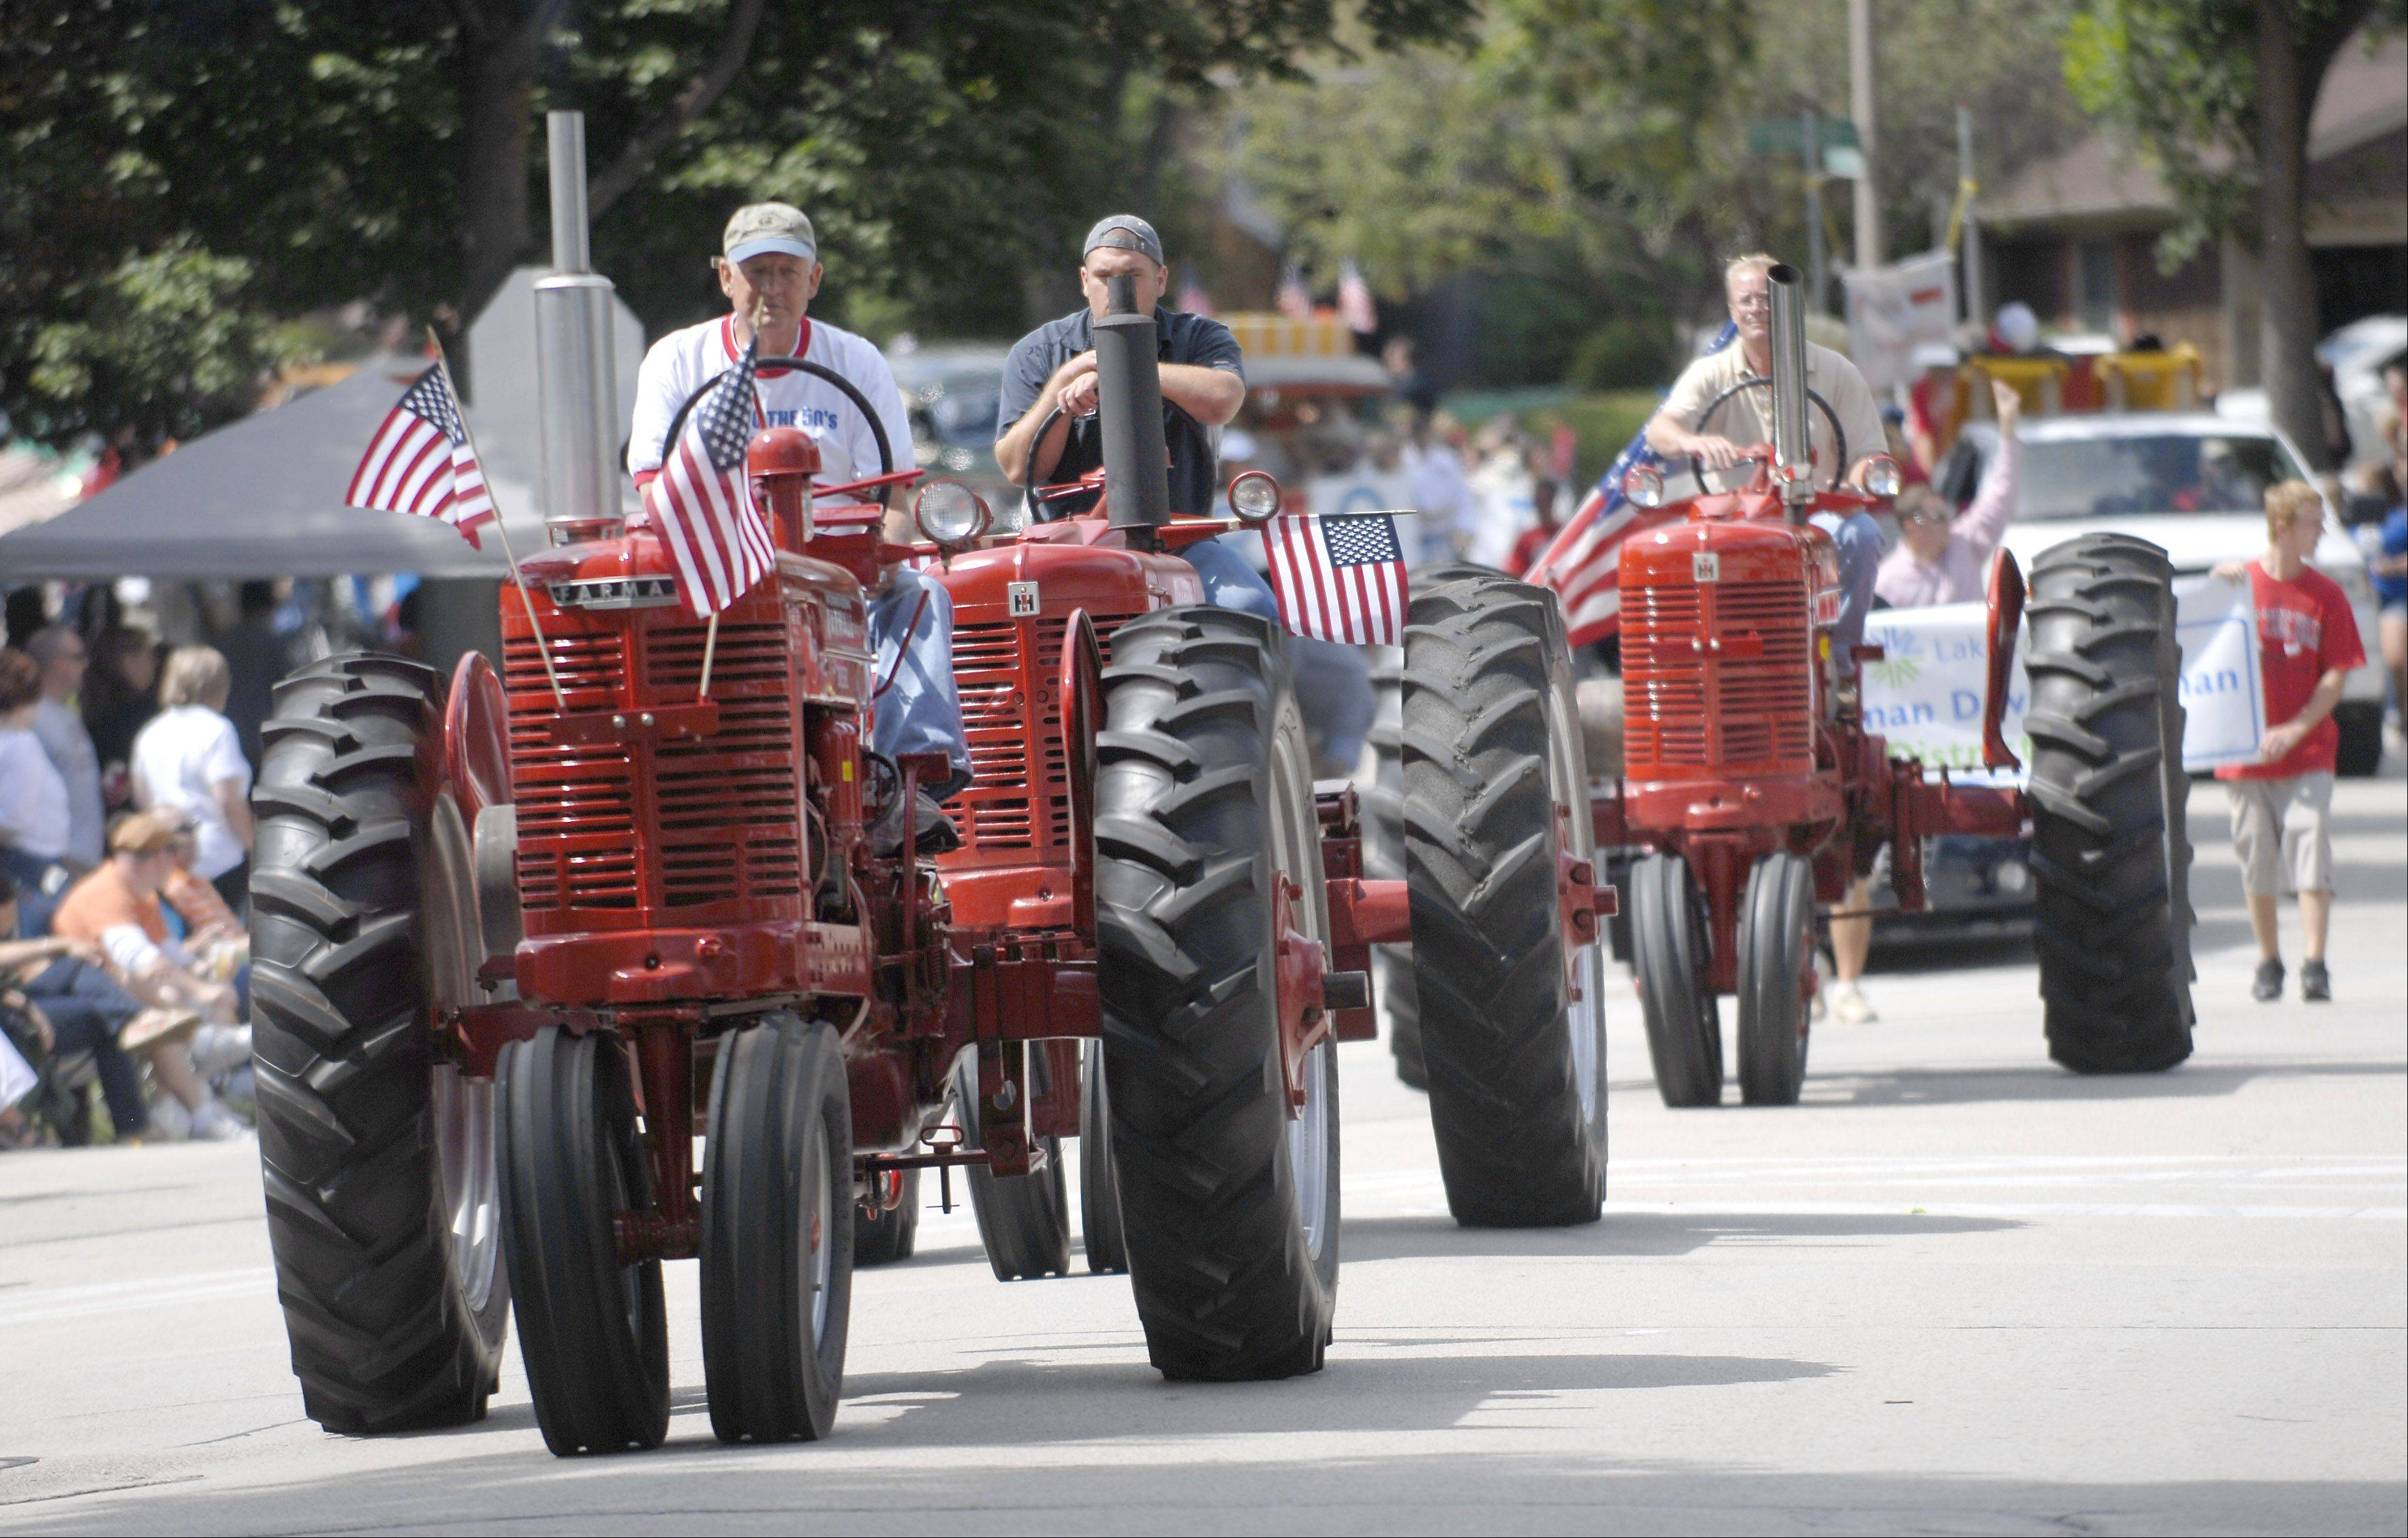 The 2011 parade pays homage to Buffalo Grove's rural beginnings.